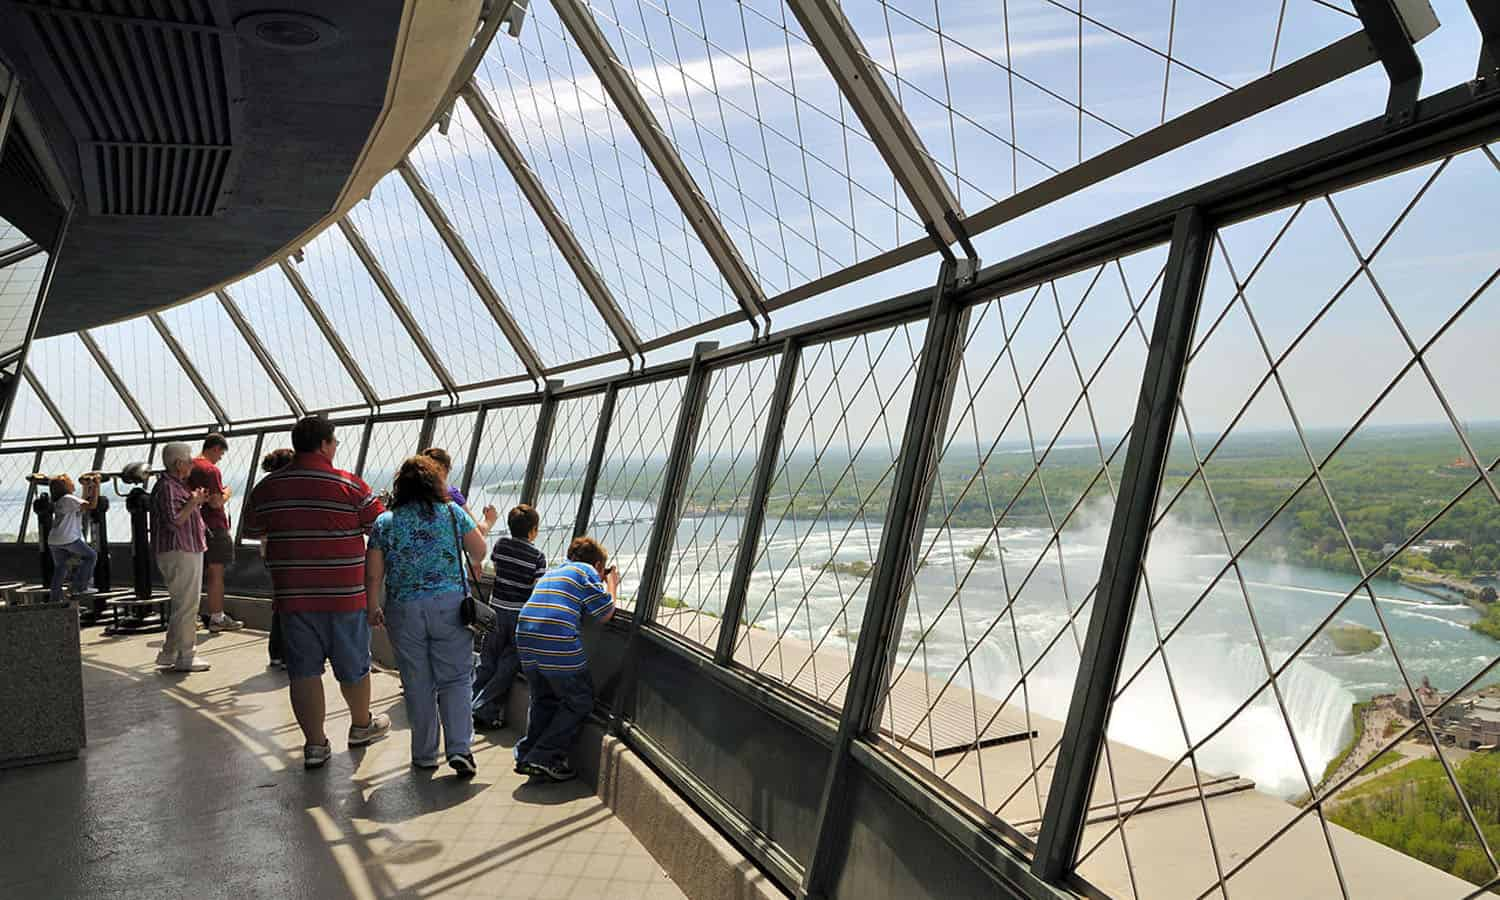 The exterior observation deck with 360 degree views of the Falls. (Wikipedia – Wladyslaw)